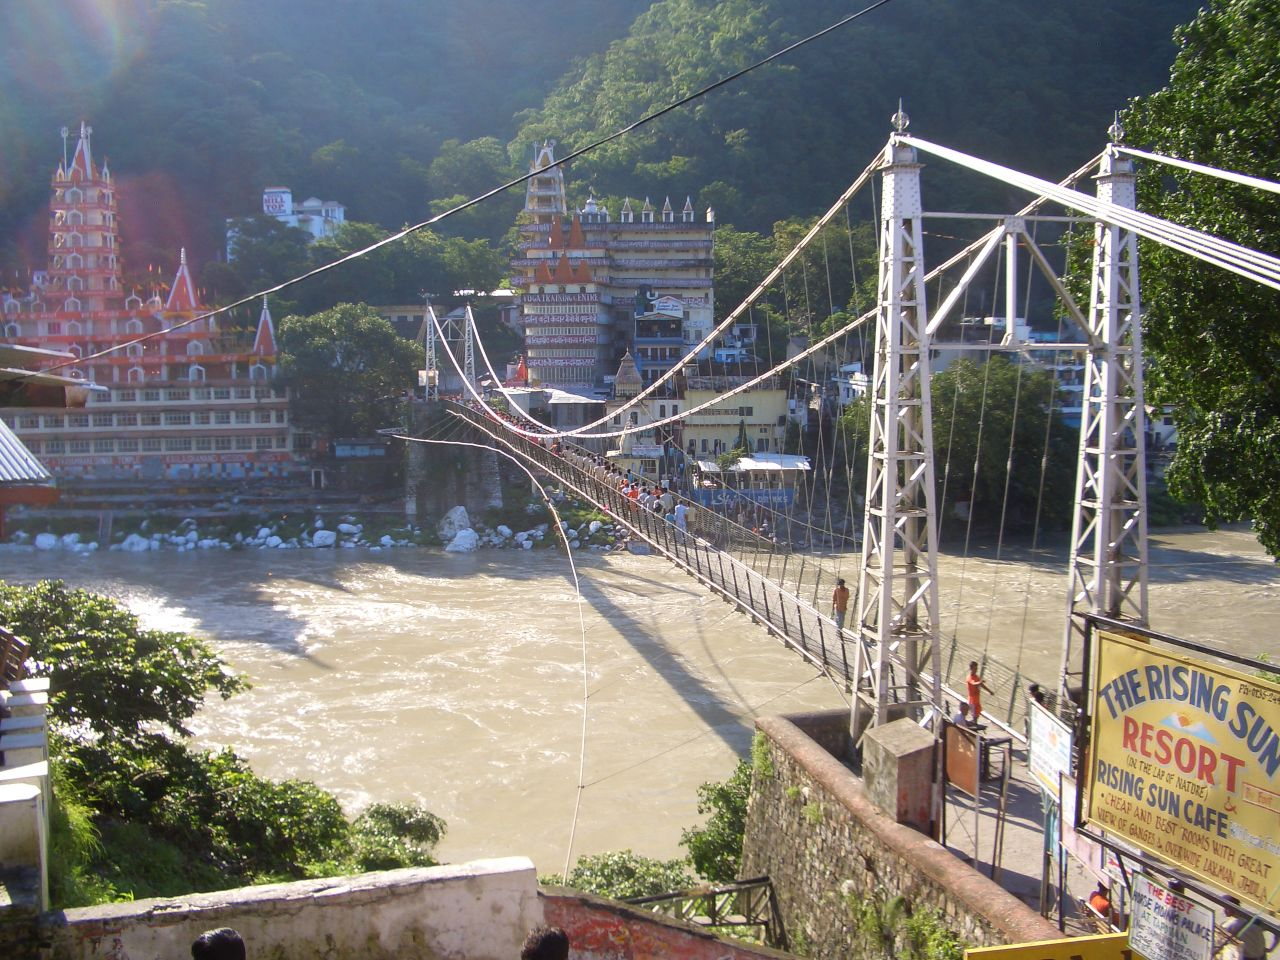 American woman arrested for shooting obscene video at Lakshman Jhula; she denies charges